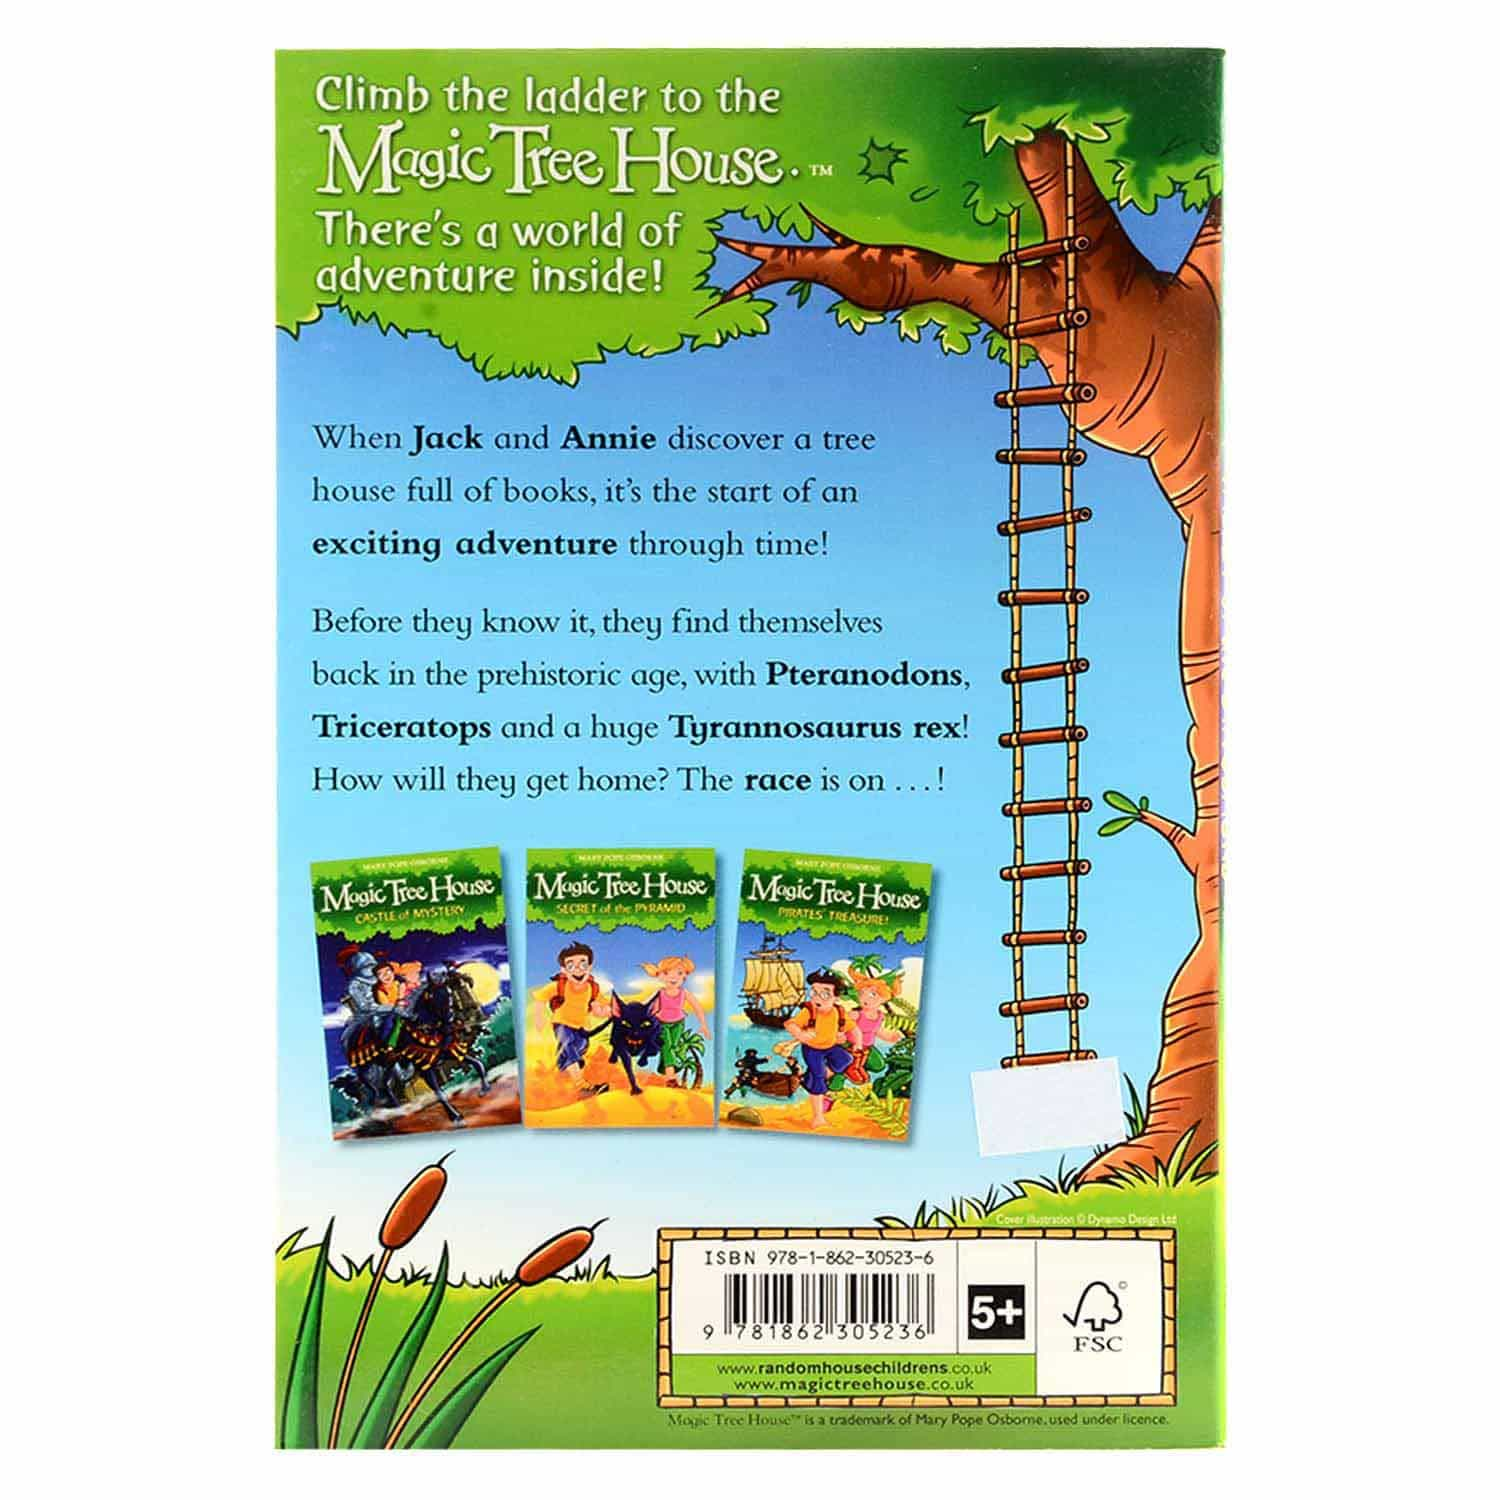 Magic Tree House Series - Valley of the Dinosaurs